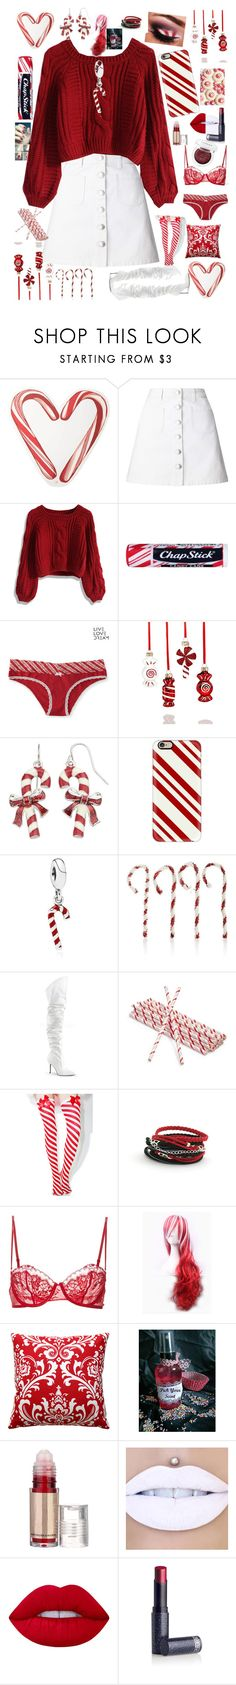 """Candy Canes are only Special when they're from You"" by gothgirl87454 ❤ liked on Polyvore featuring Draper James, Miss Selfridge, Chicwish, Chapstick, Aéropostale, Holiday Lane, Casetify, Pandora, Bethany Lowe and Classique"